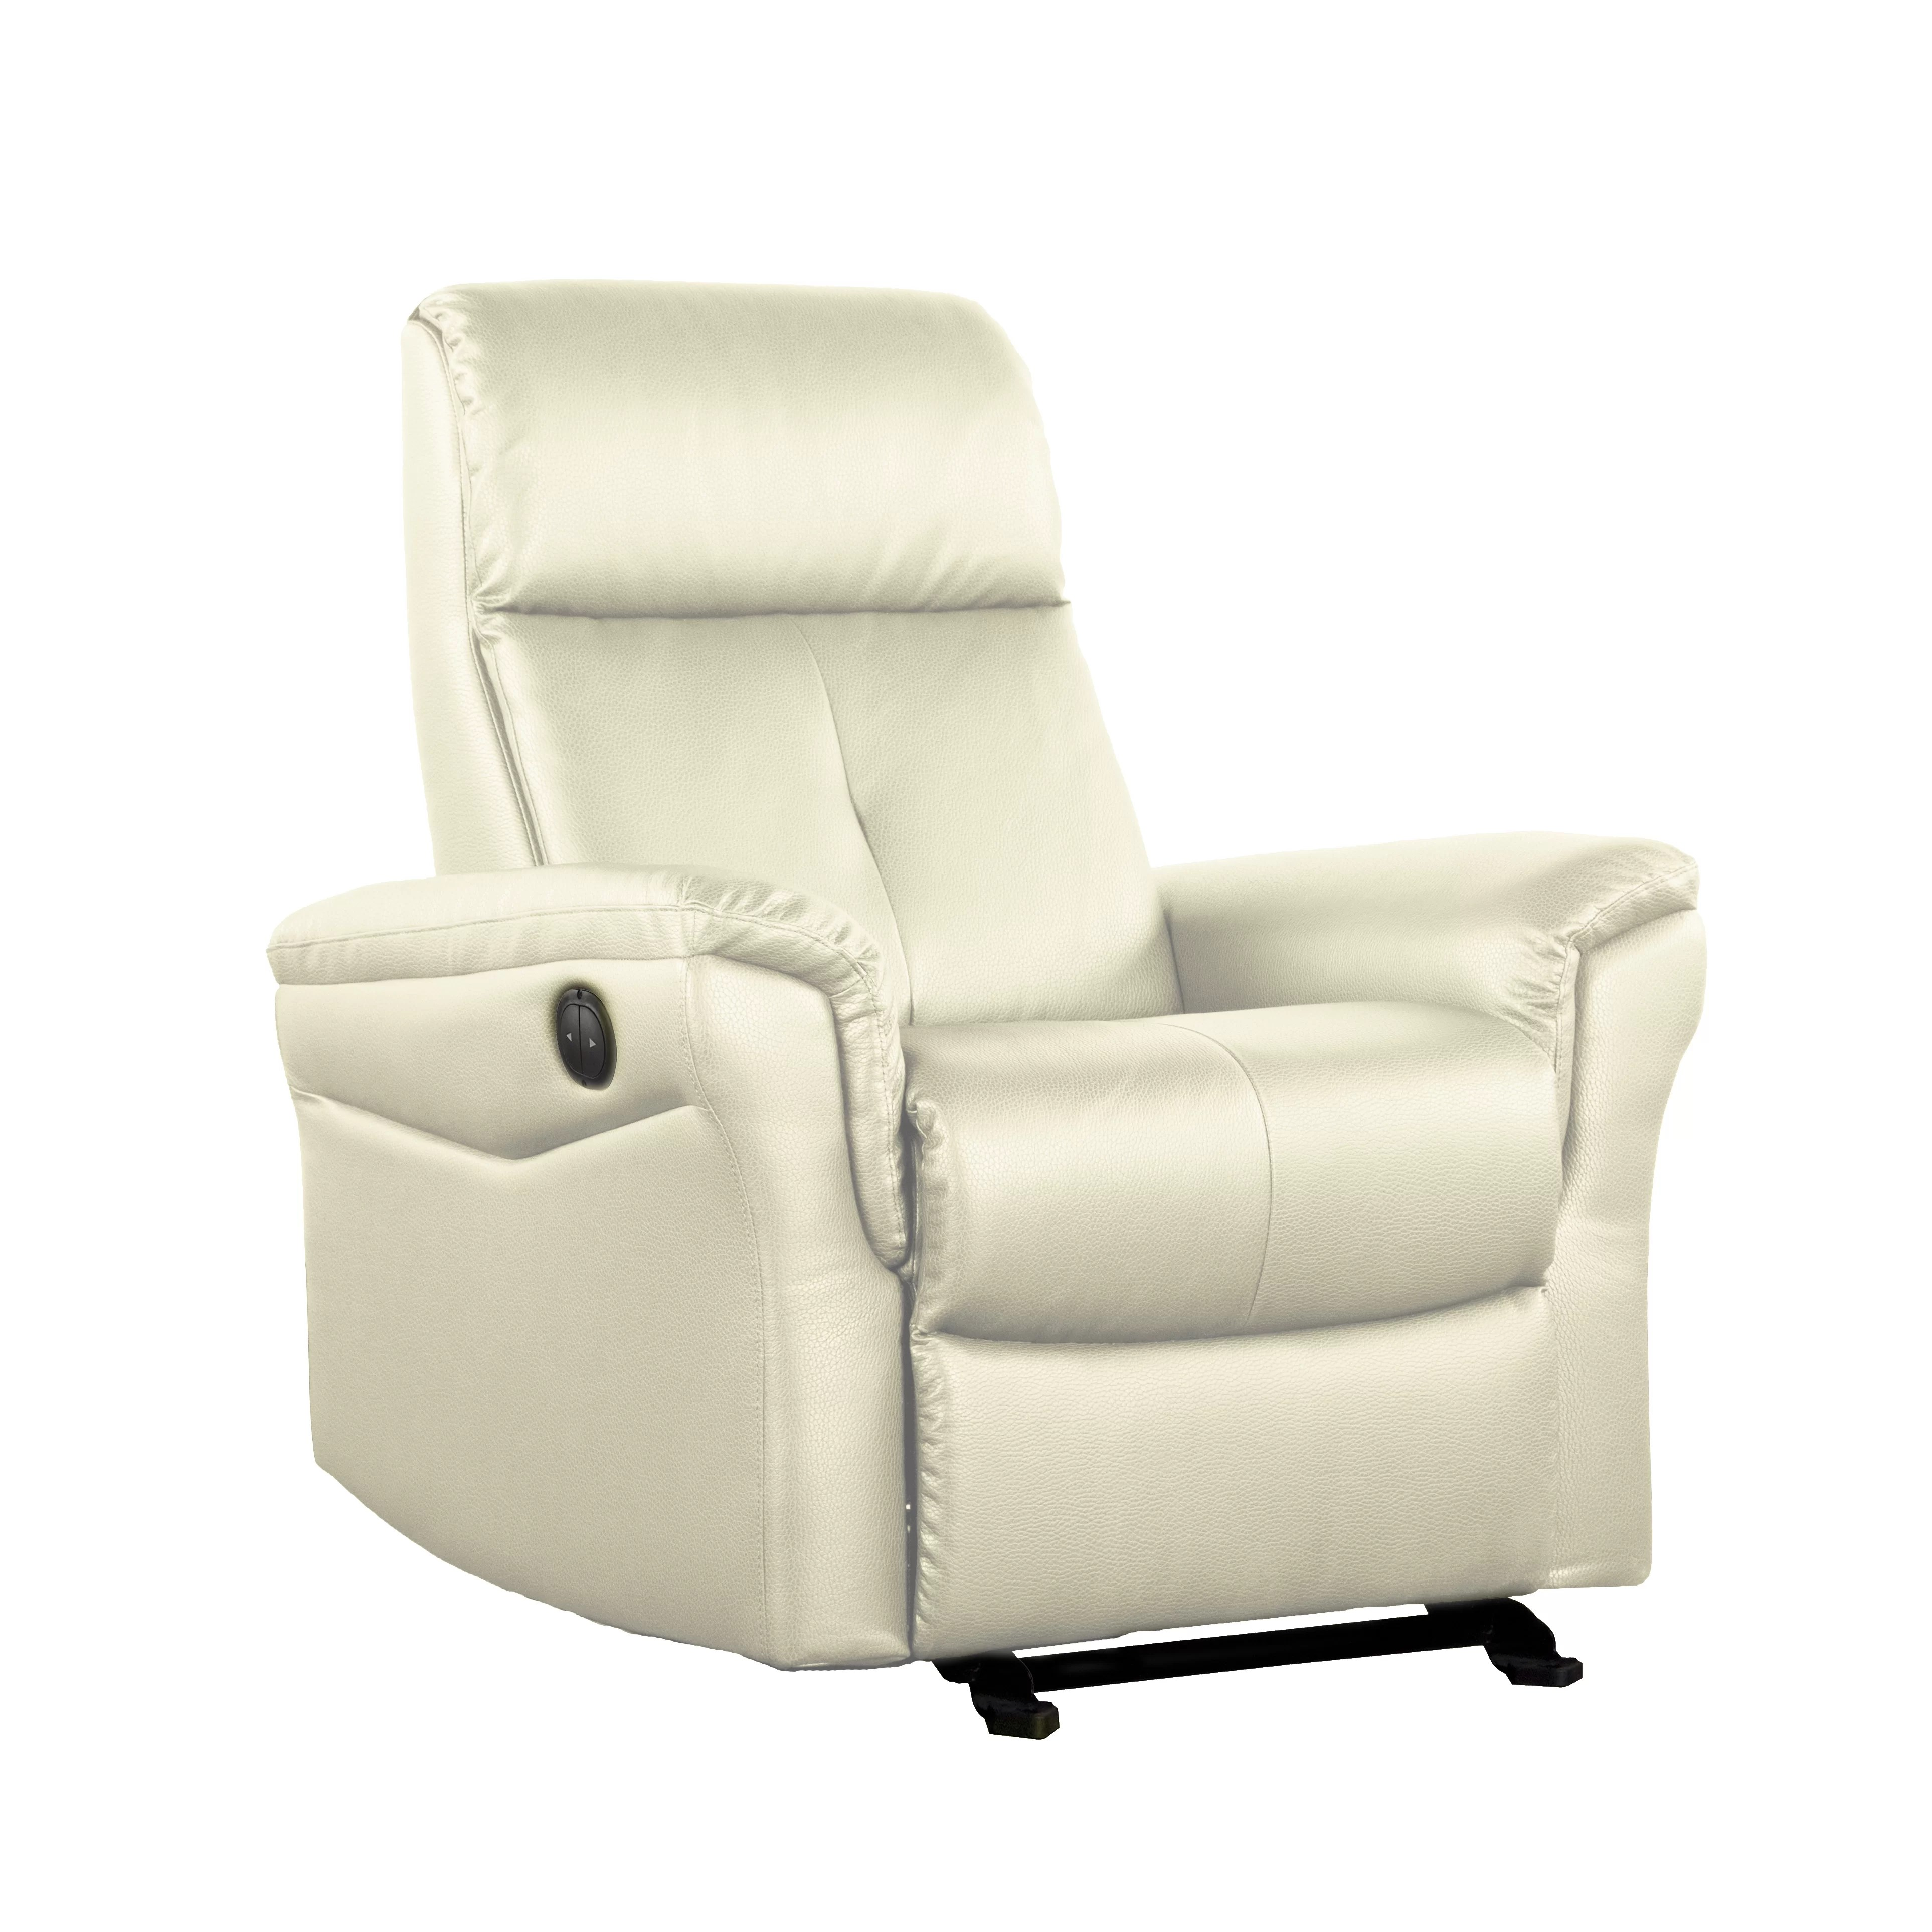 push button recliner chairs hanging chair round electric wayfair